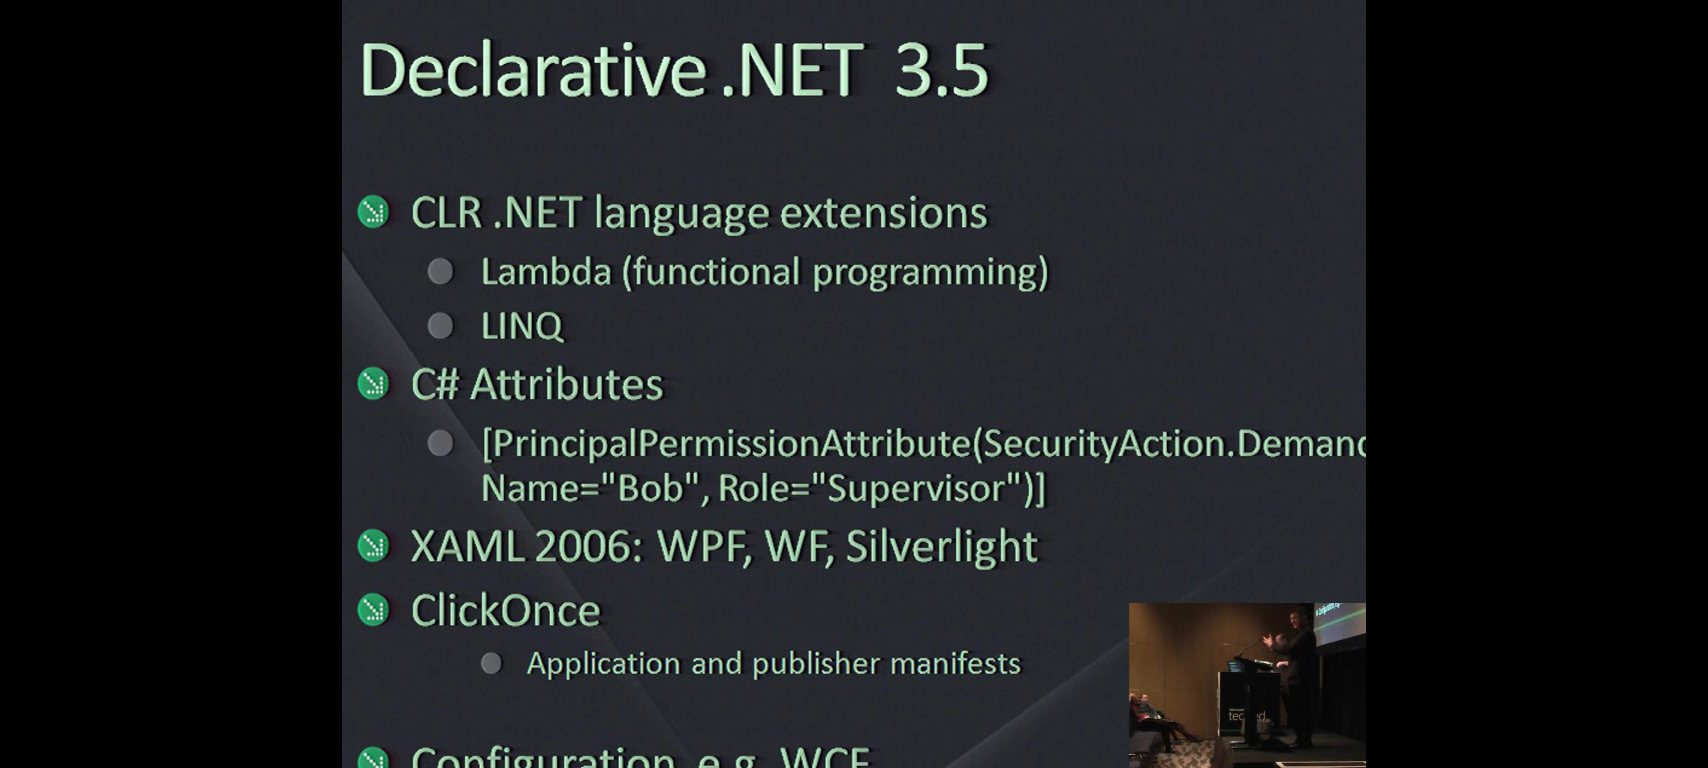 Declarative N tier Applications Using WPF, WCF and WF in the Microsoft .NET Framework 4